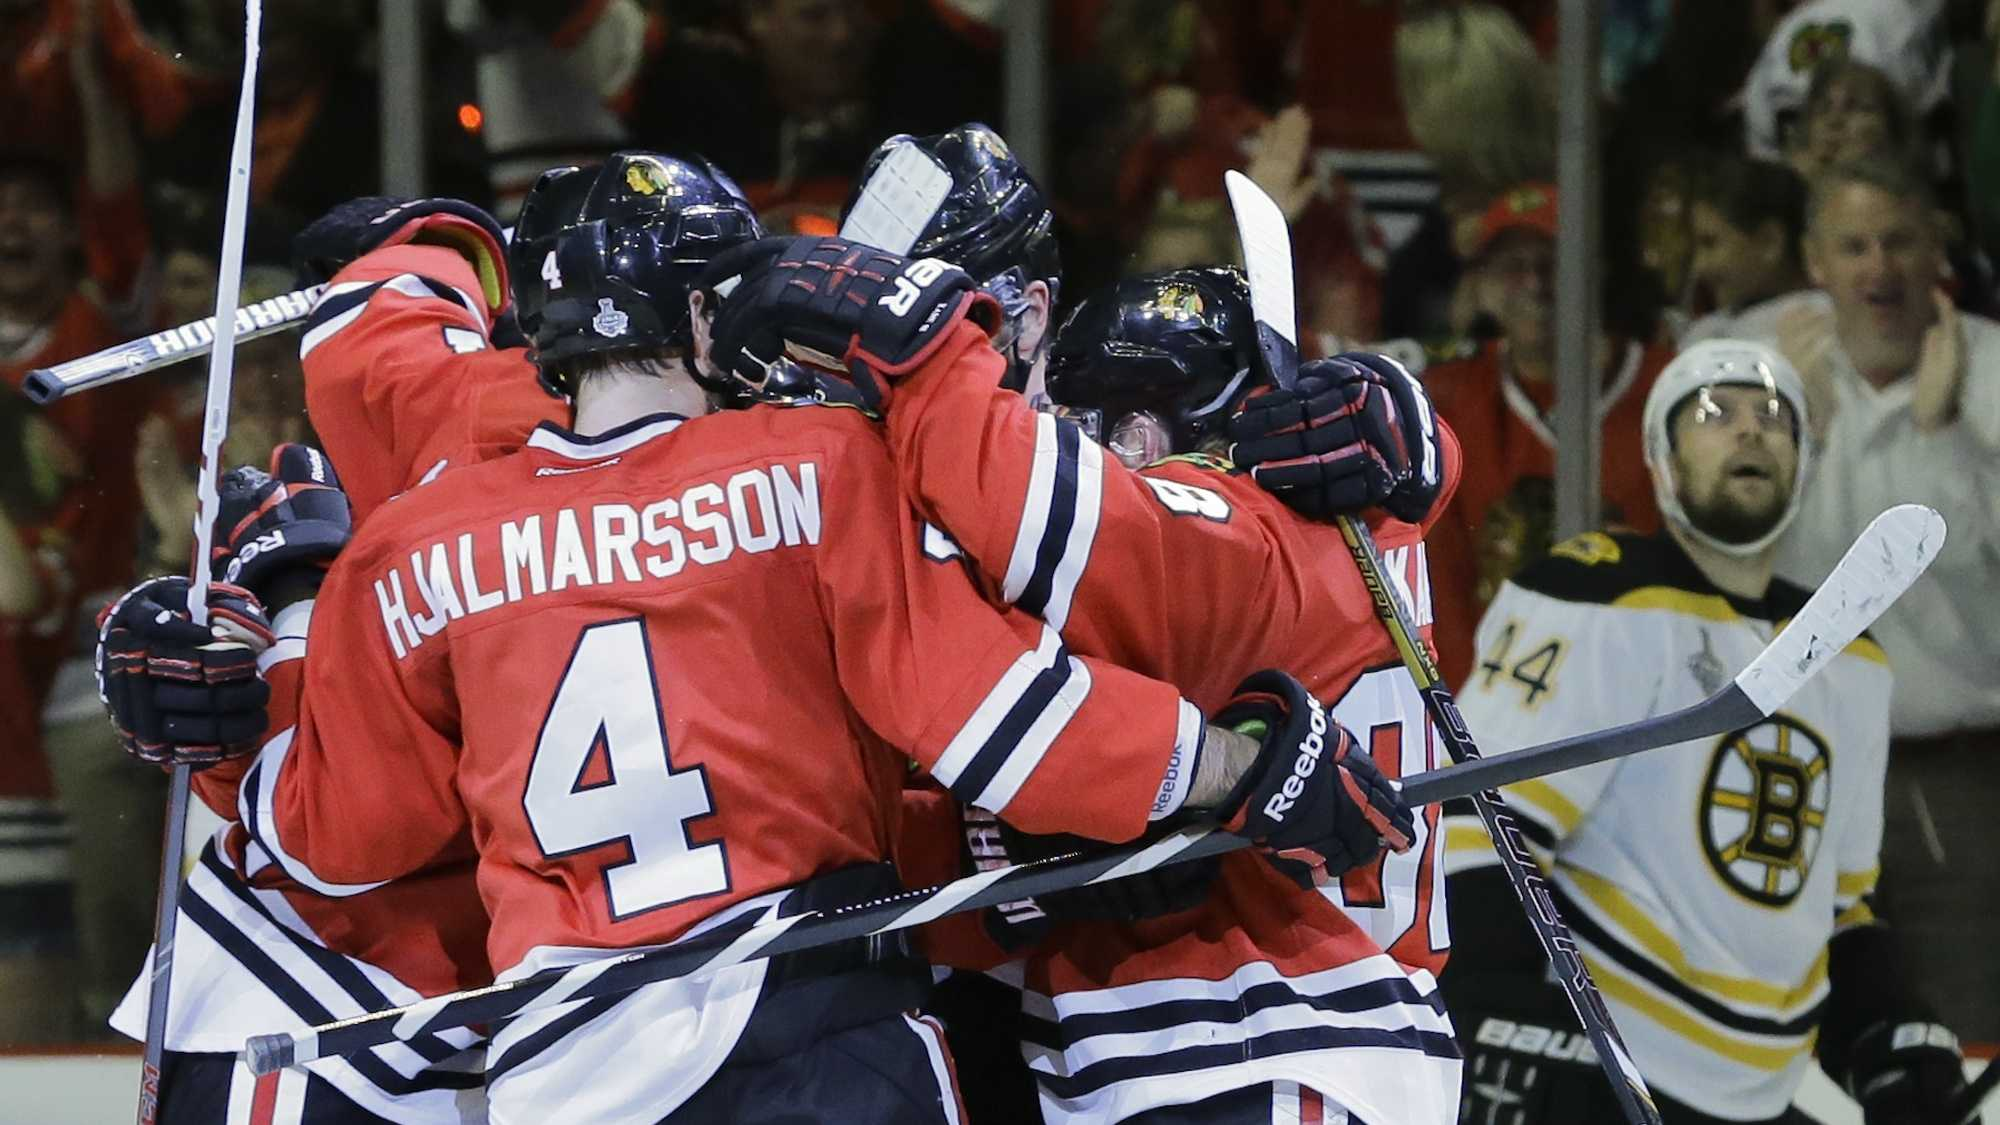 The Chicago Blackhawks celebrate a second period goal against the Boston Bruins during Game 5 of the NHL hockey Stanley Cup Finals, Saturday, June 22, 2013, in Chicago.